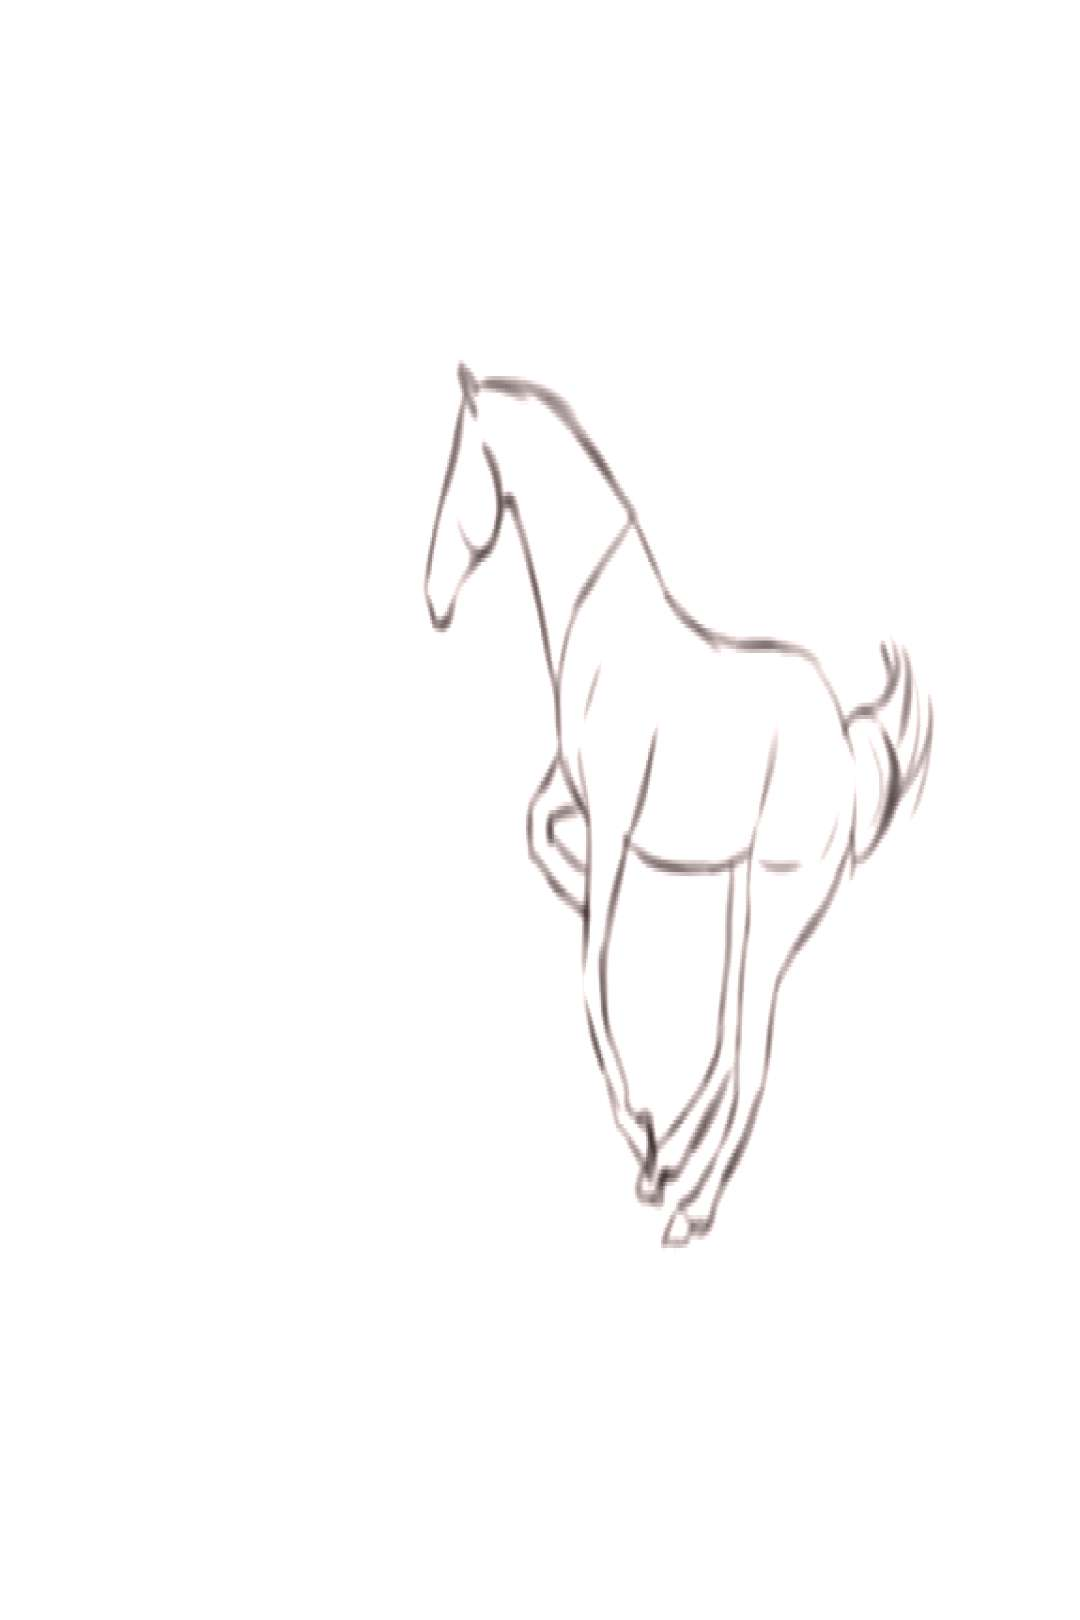 One Stride at a Time. There is something enchanting about drawn animation. Even in its simplest fo